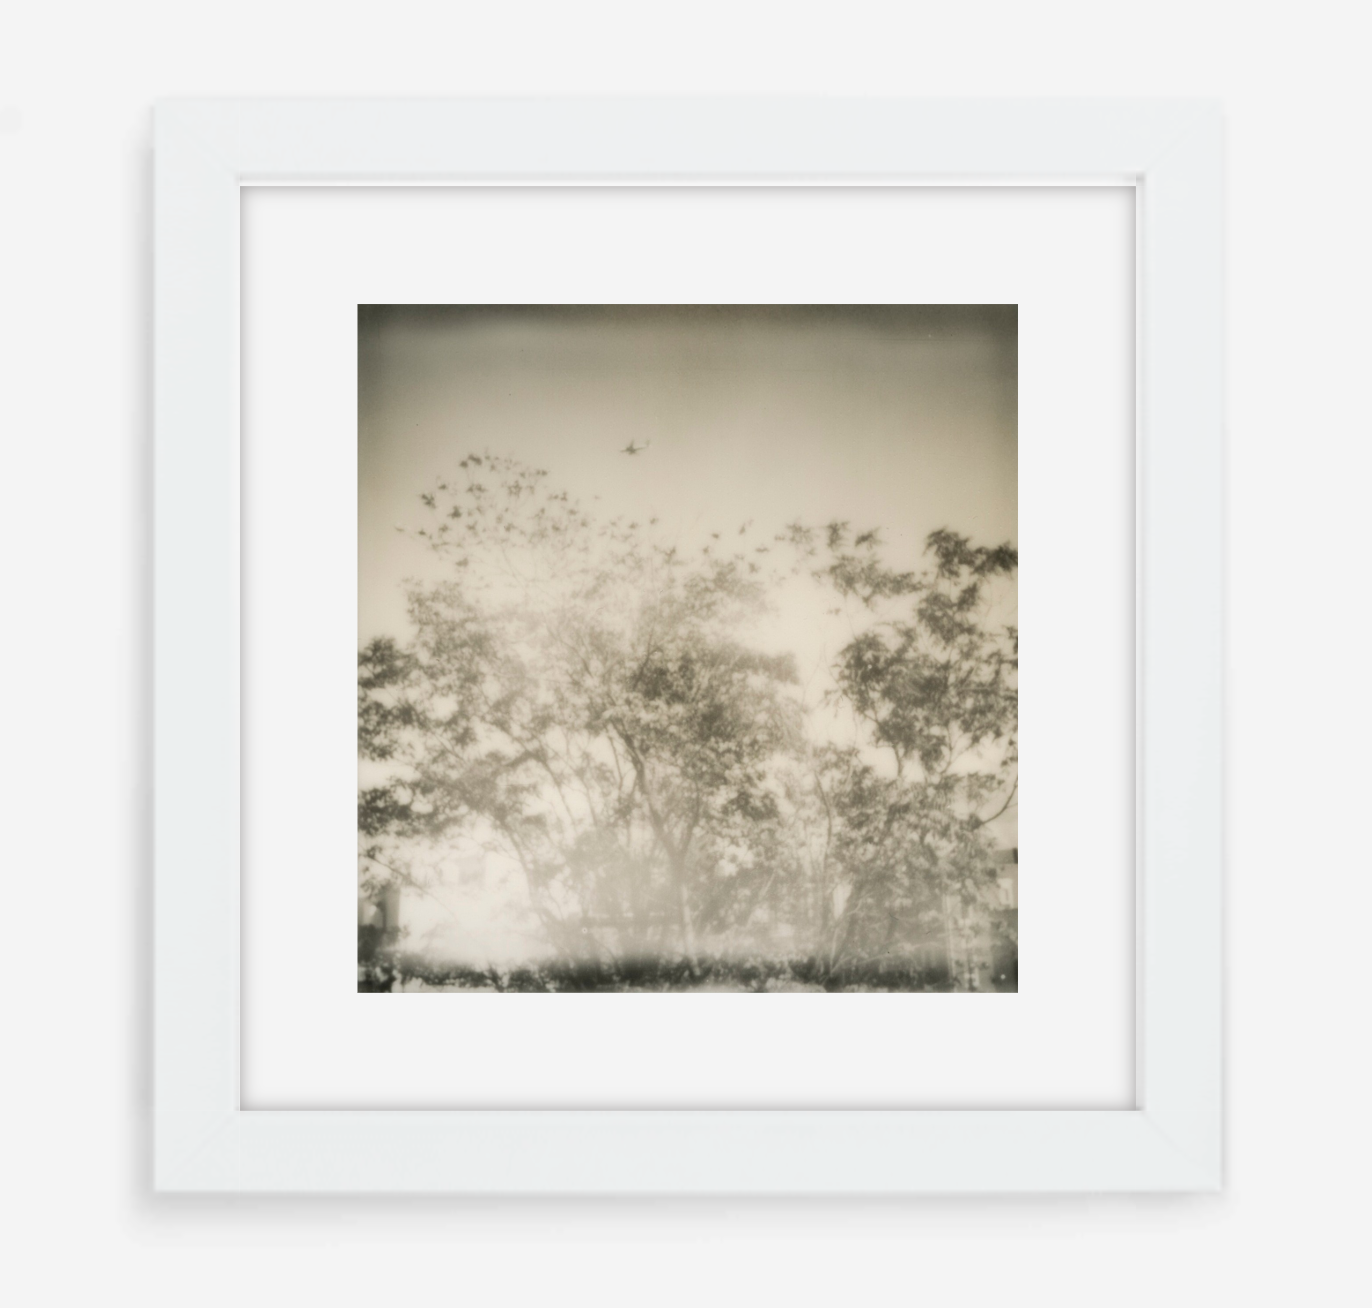 plane over trees - 5x5.2 / Gallery White / With Mat